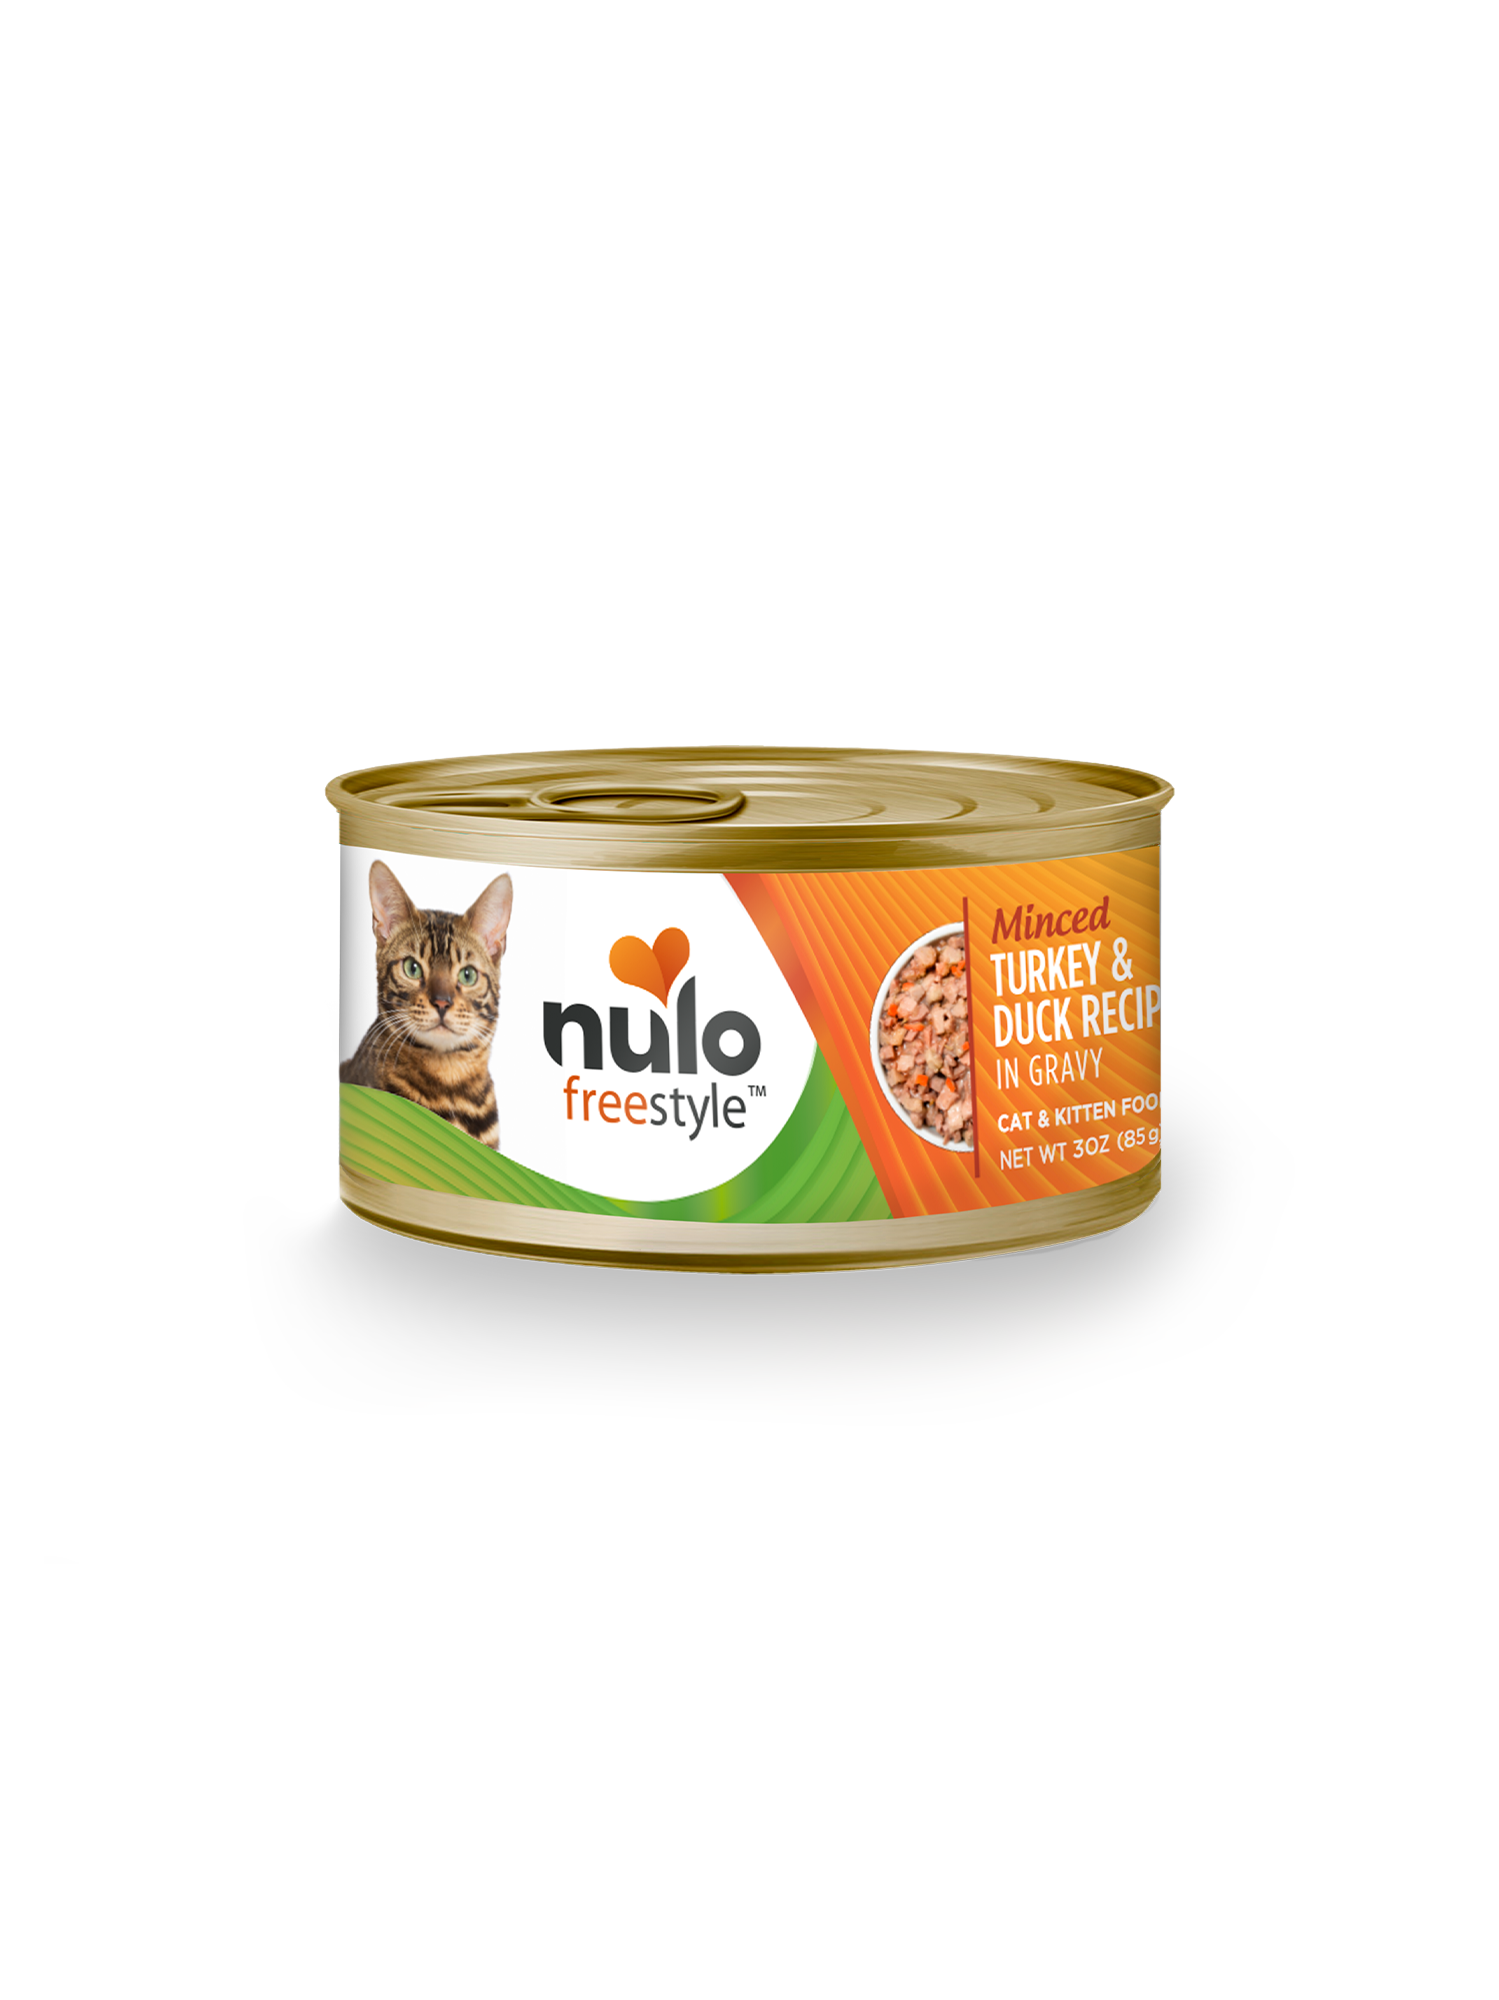 Nulo Nulo Freestyle Minced Turkey & Duck Wet Cat Food 3oz